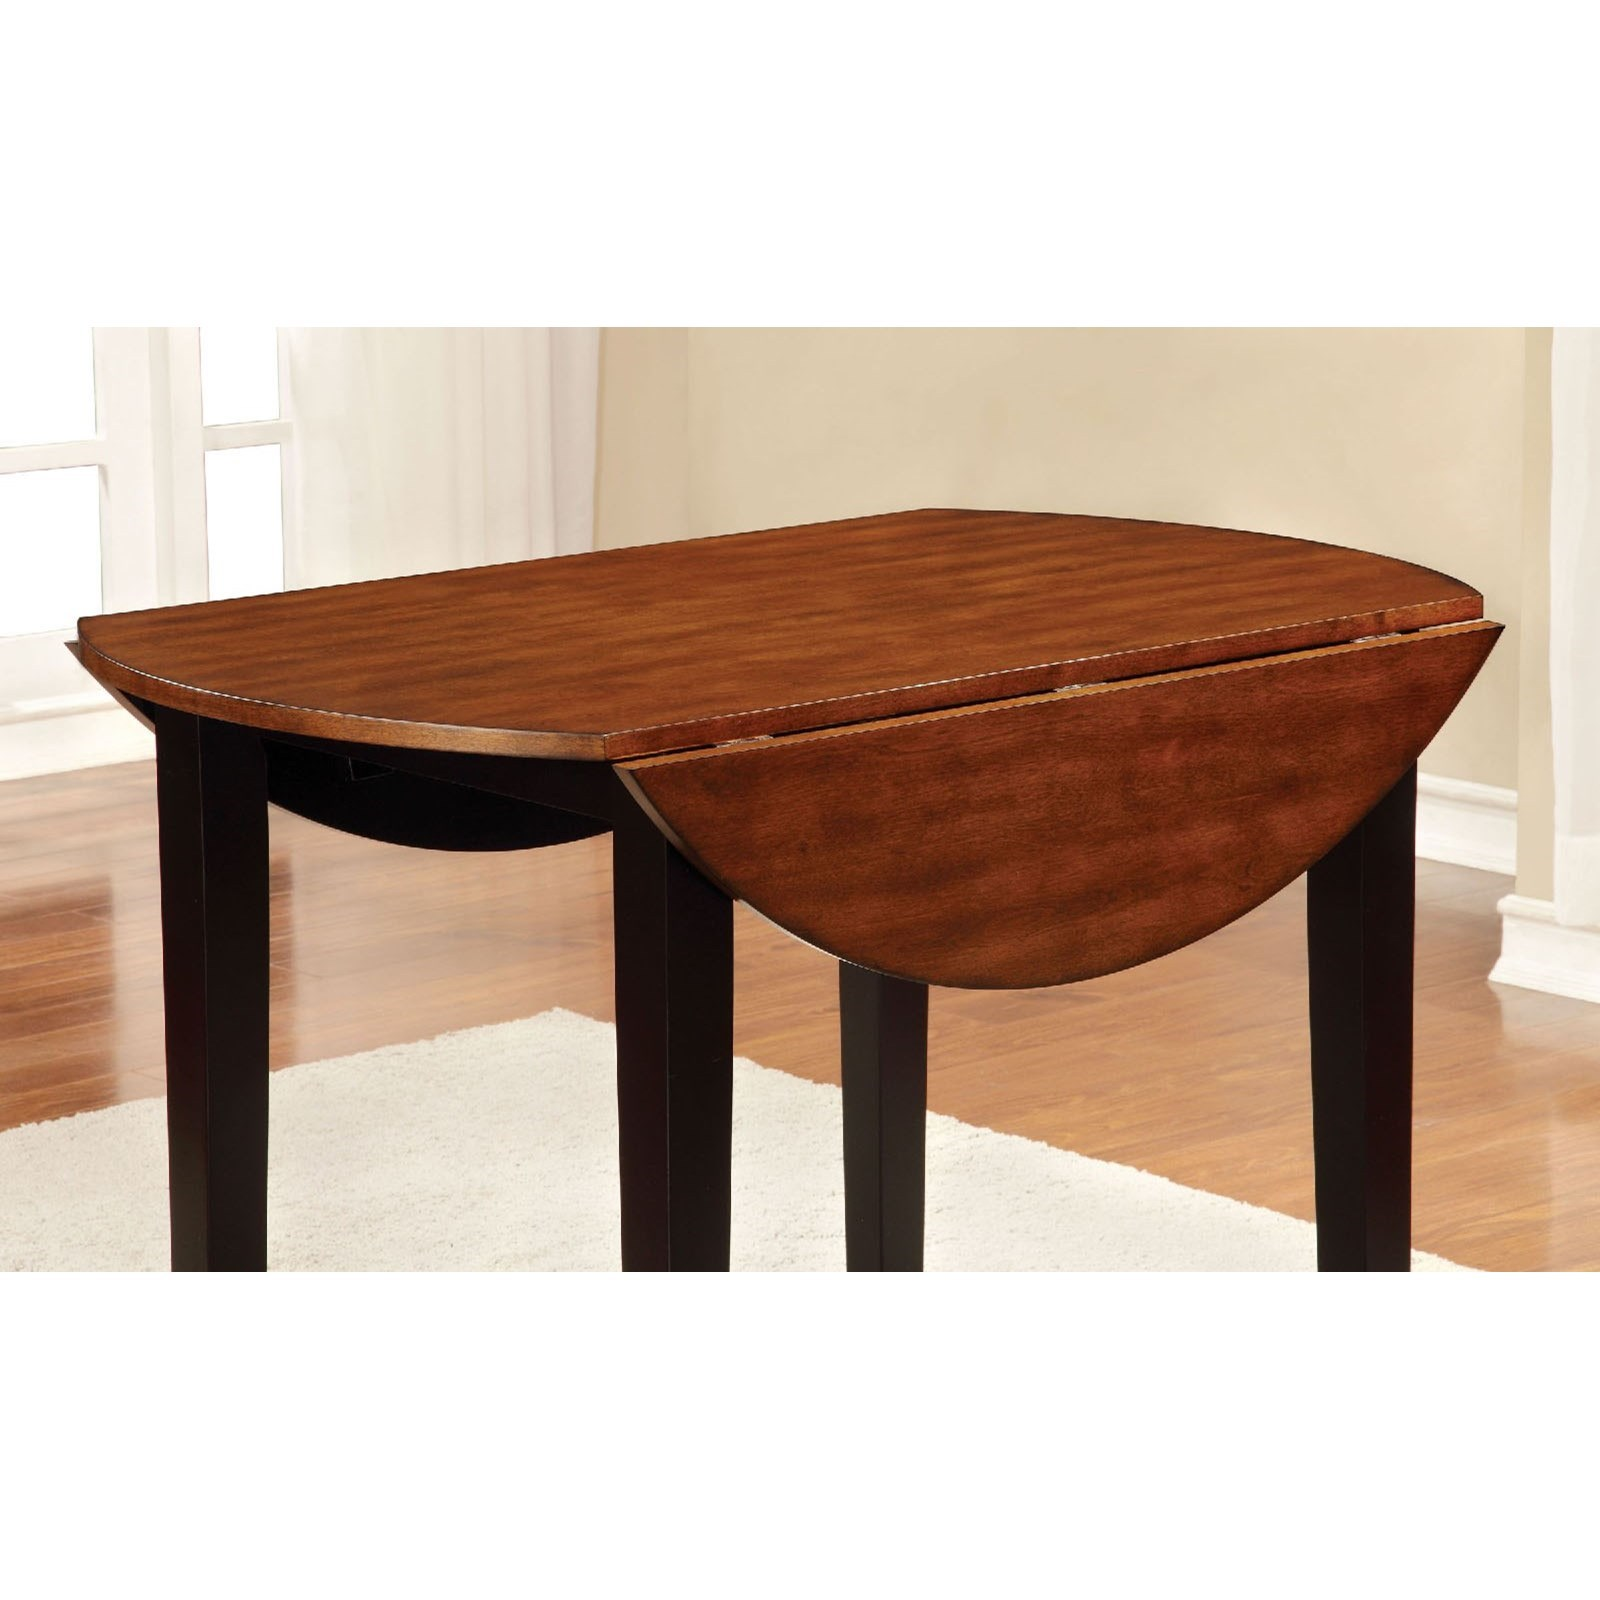 Furniture Of America Dover Transitional Round Dining Table W/ Drop Leaf